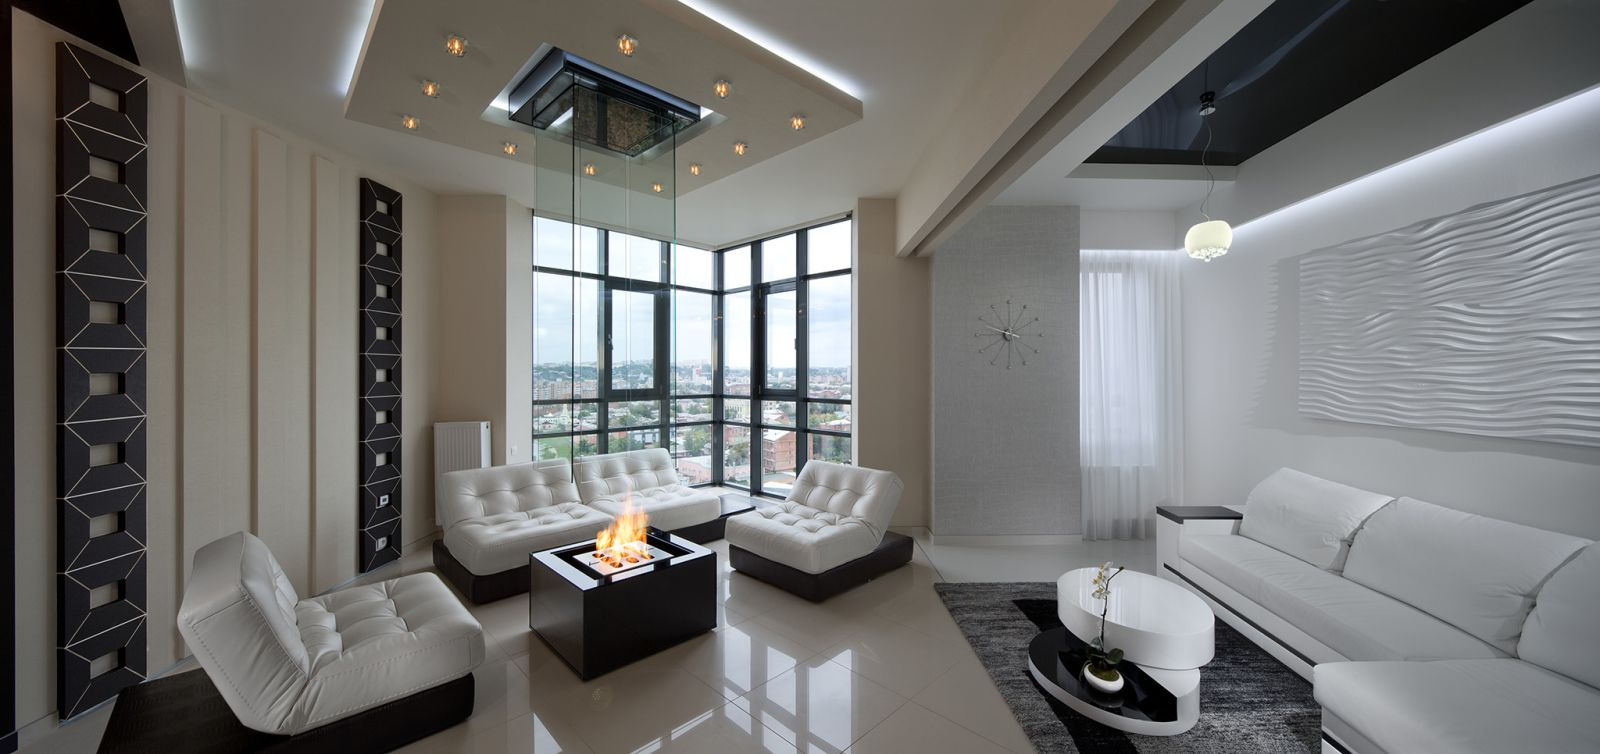 Interior Design Styles Combination in Modern Ukrainian Apartment. Living room with bio fireplace